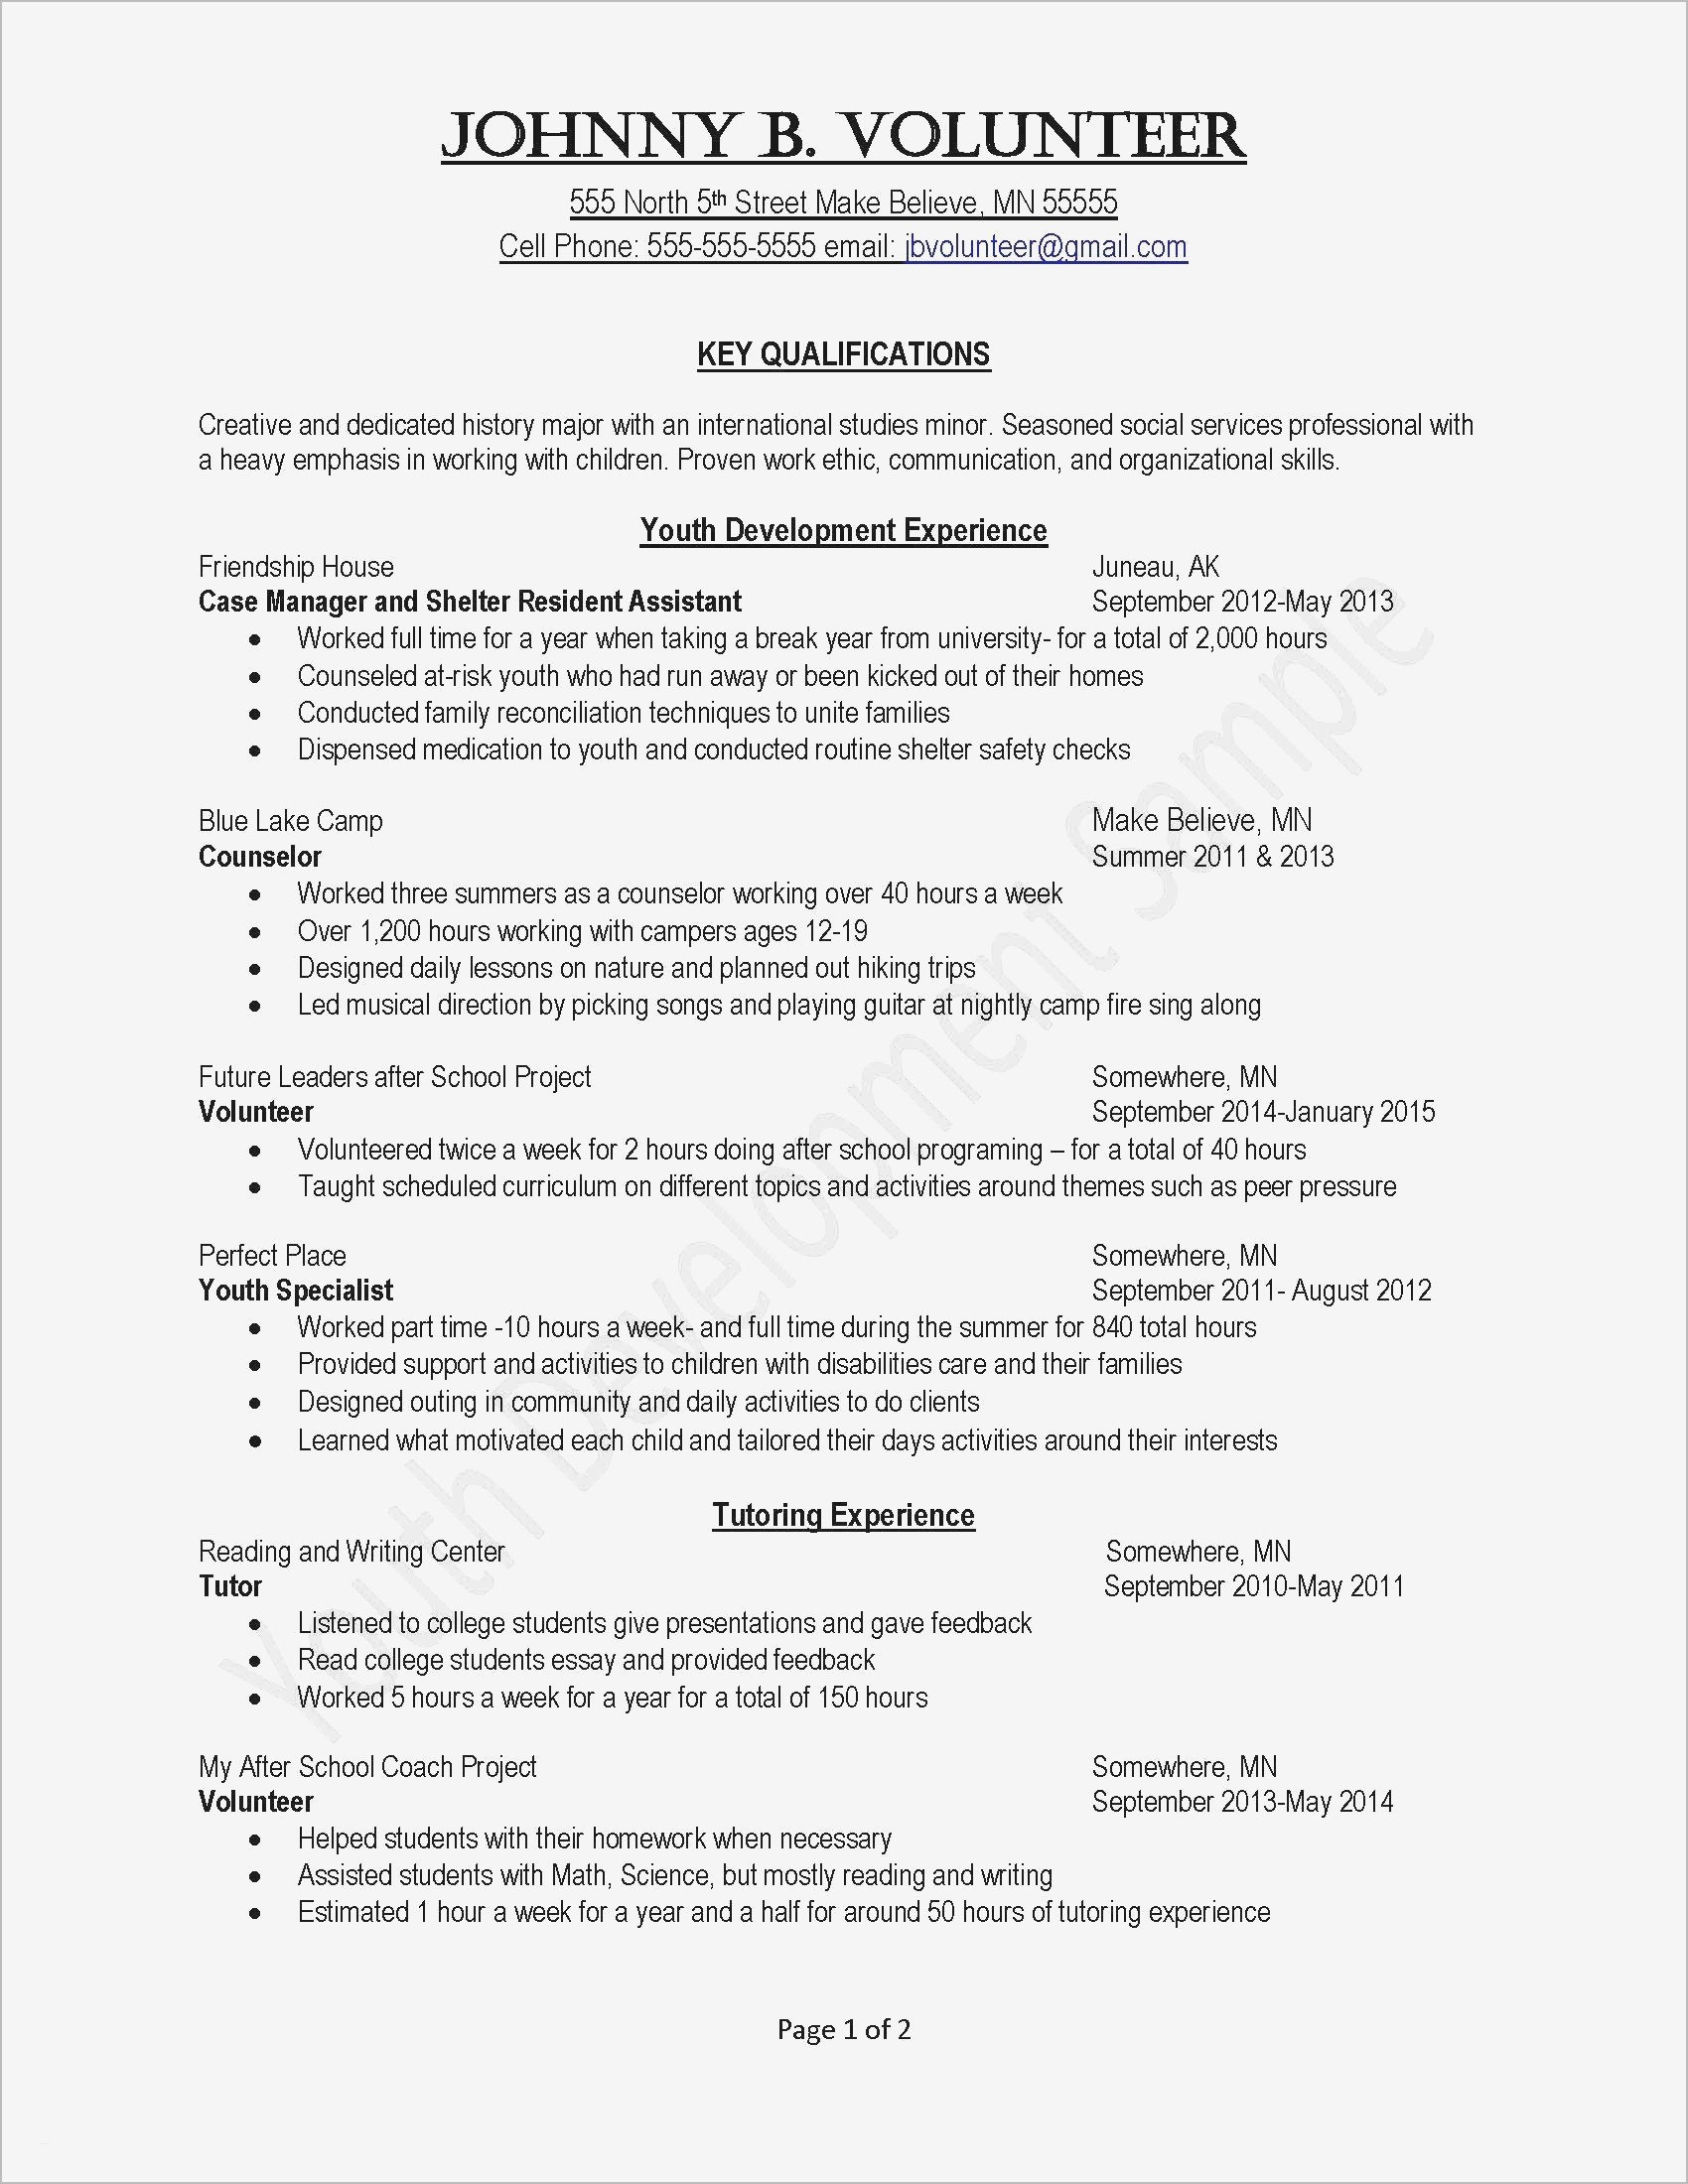 Job Cover Letter Template Word - Professional Resume Cover Letter Template Best Perfect Professional